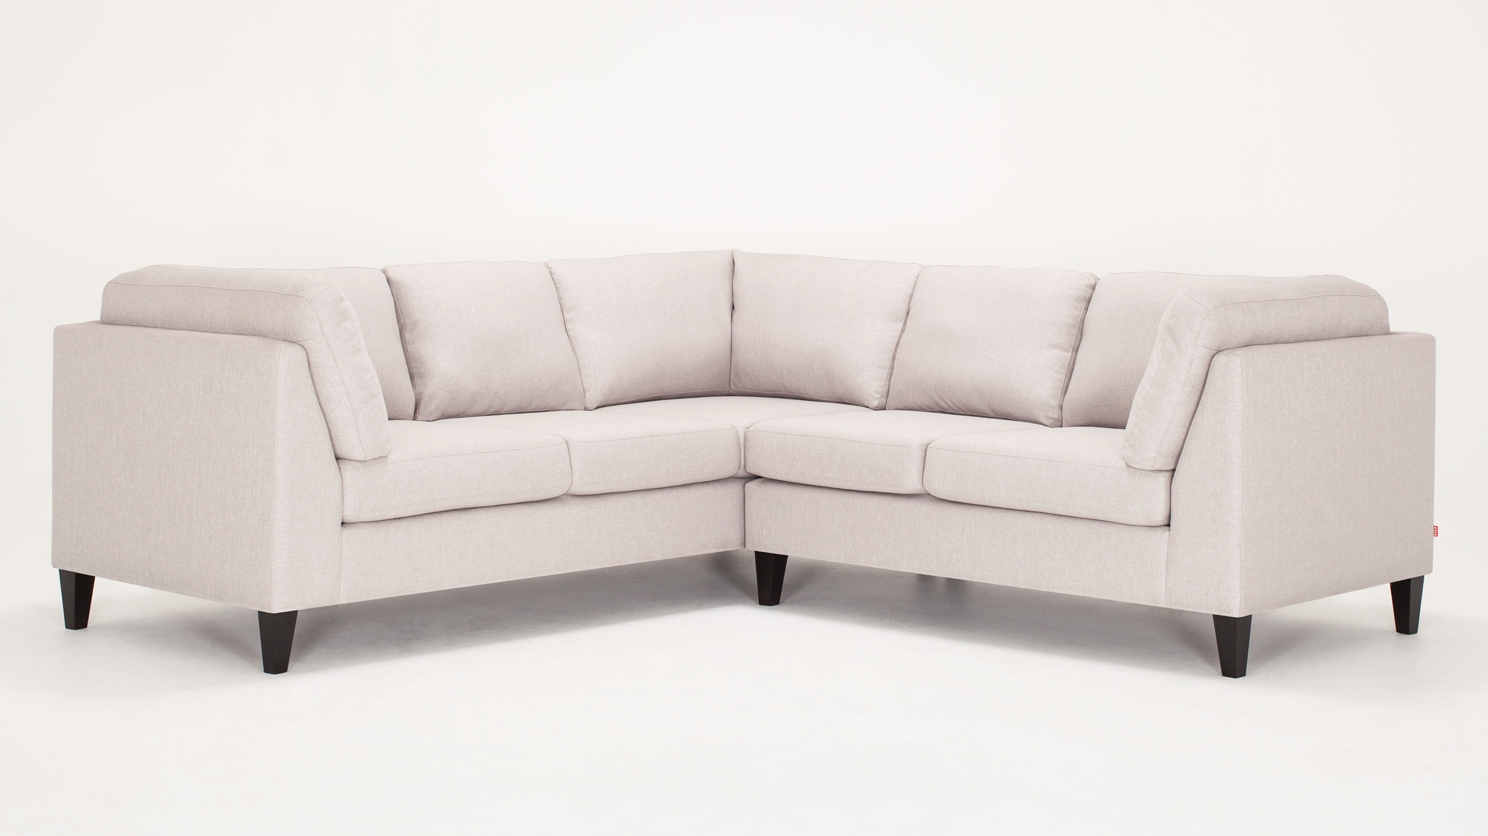 salema_2_piece_sectional_sofa_polo_grey_front_01.jpg